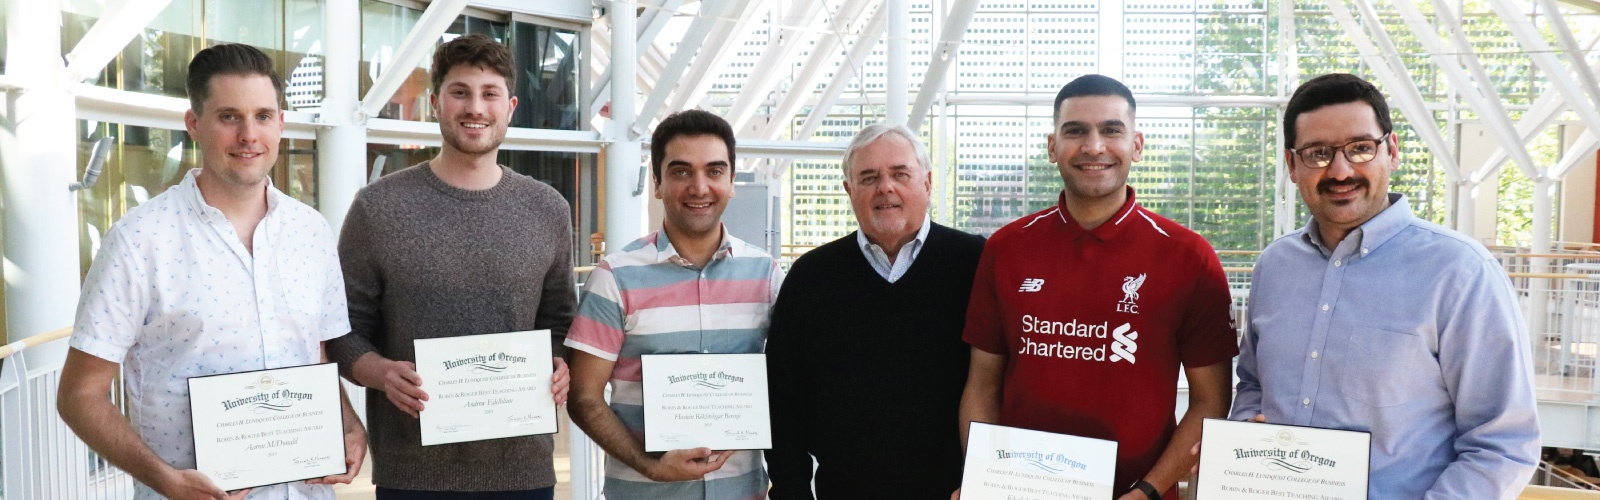 Roger Best poses for a photo with award-winning PhD students